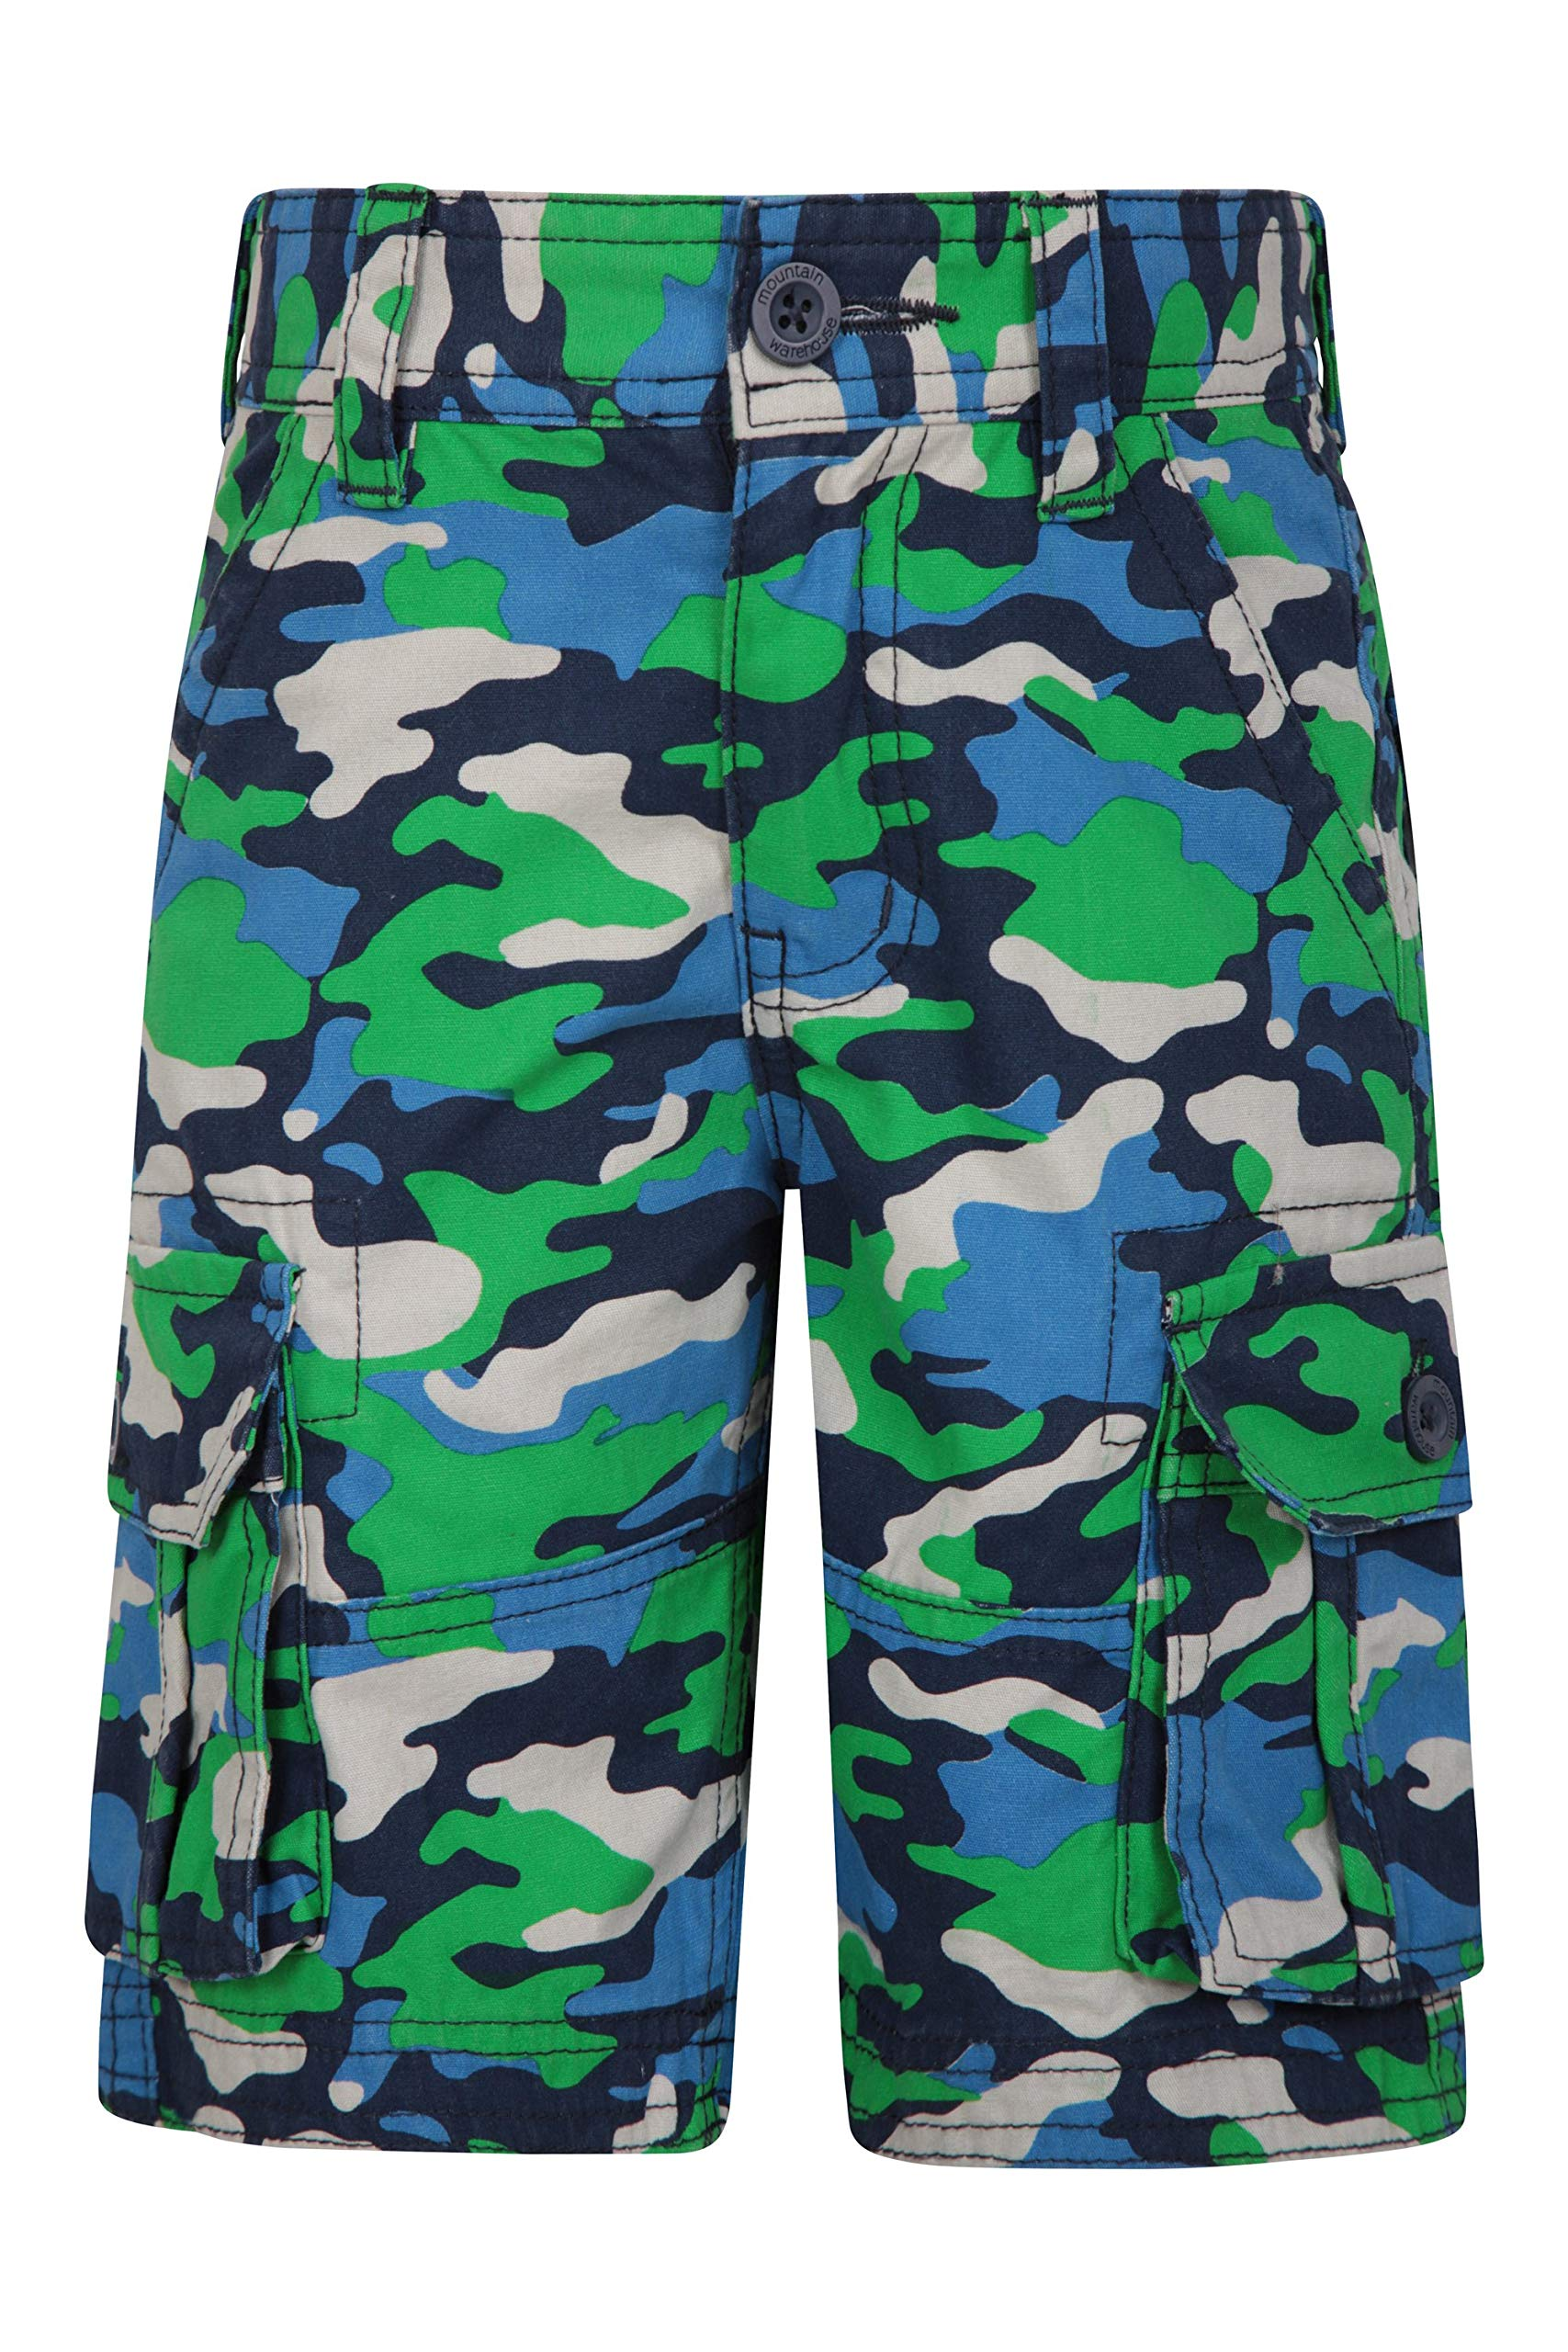 Mountain Warehouse Kids Camo Cargo Shorts - 100% Cotton Summer Pants Green 3-4 Years by Mountain Warehouse